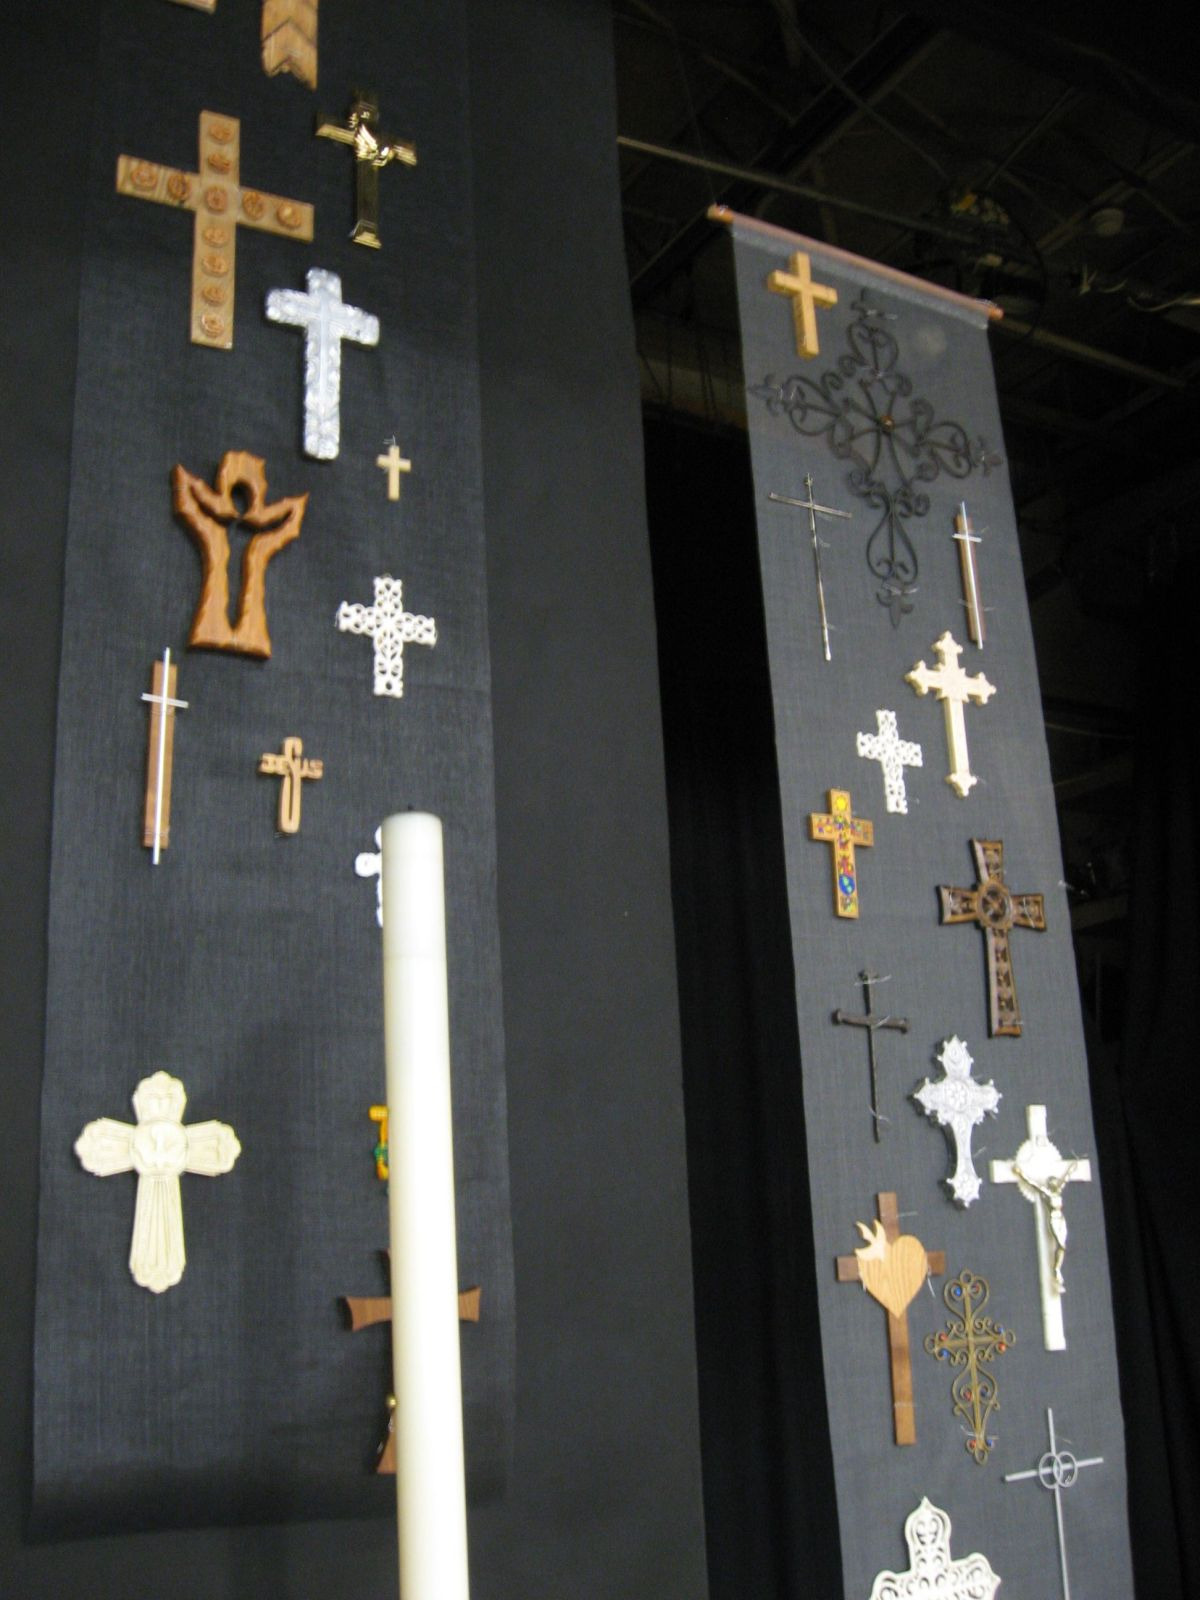 Close-up, devotional crosses on window screening